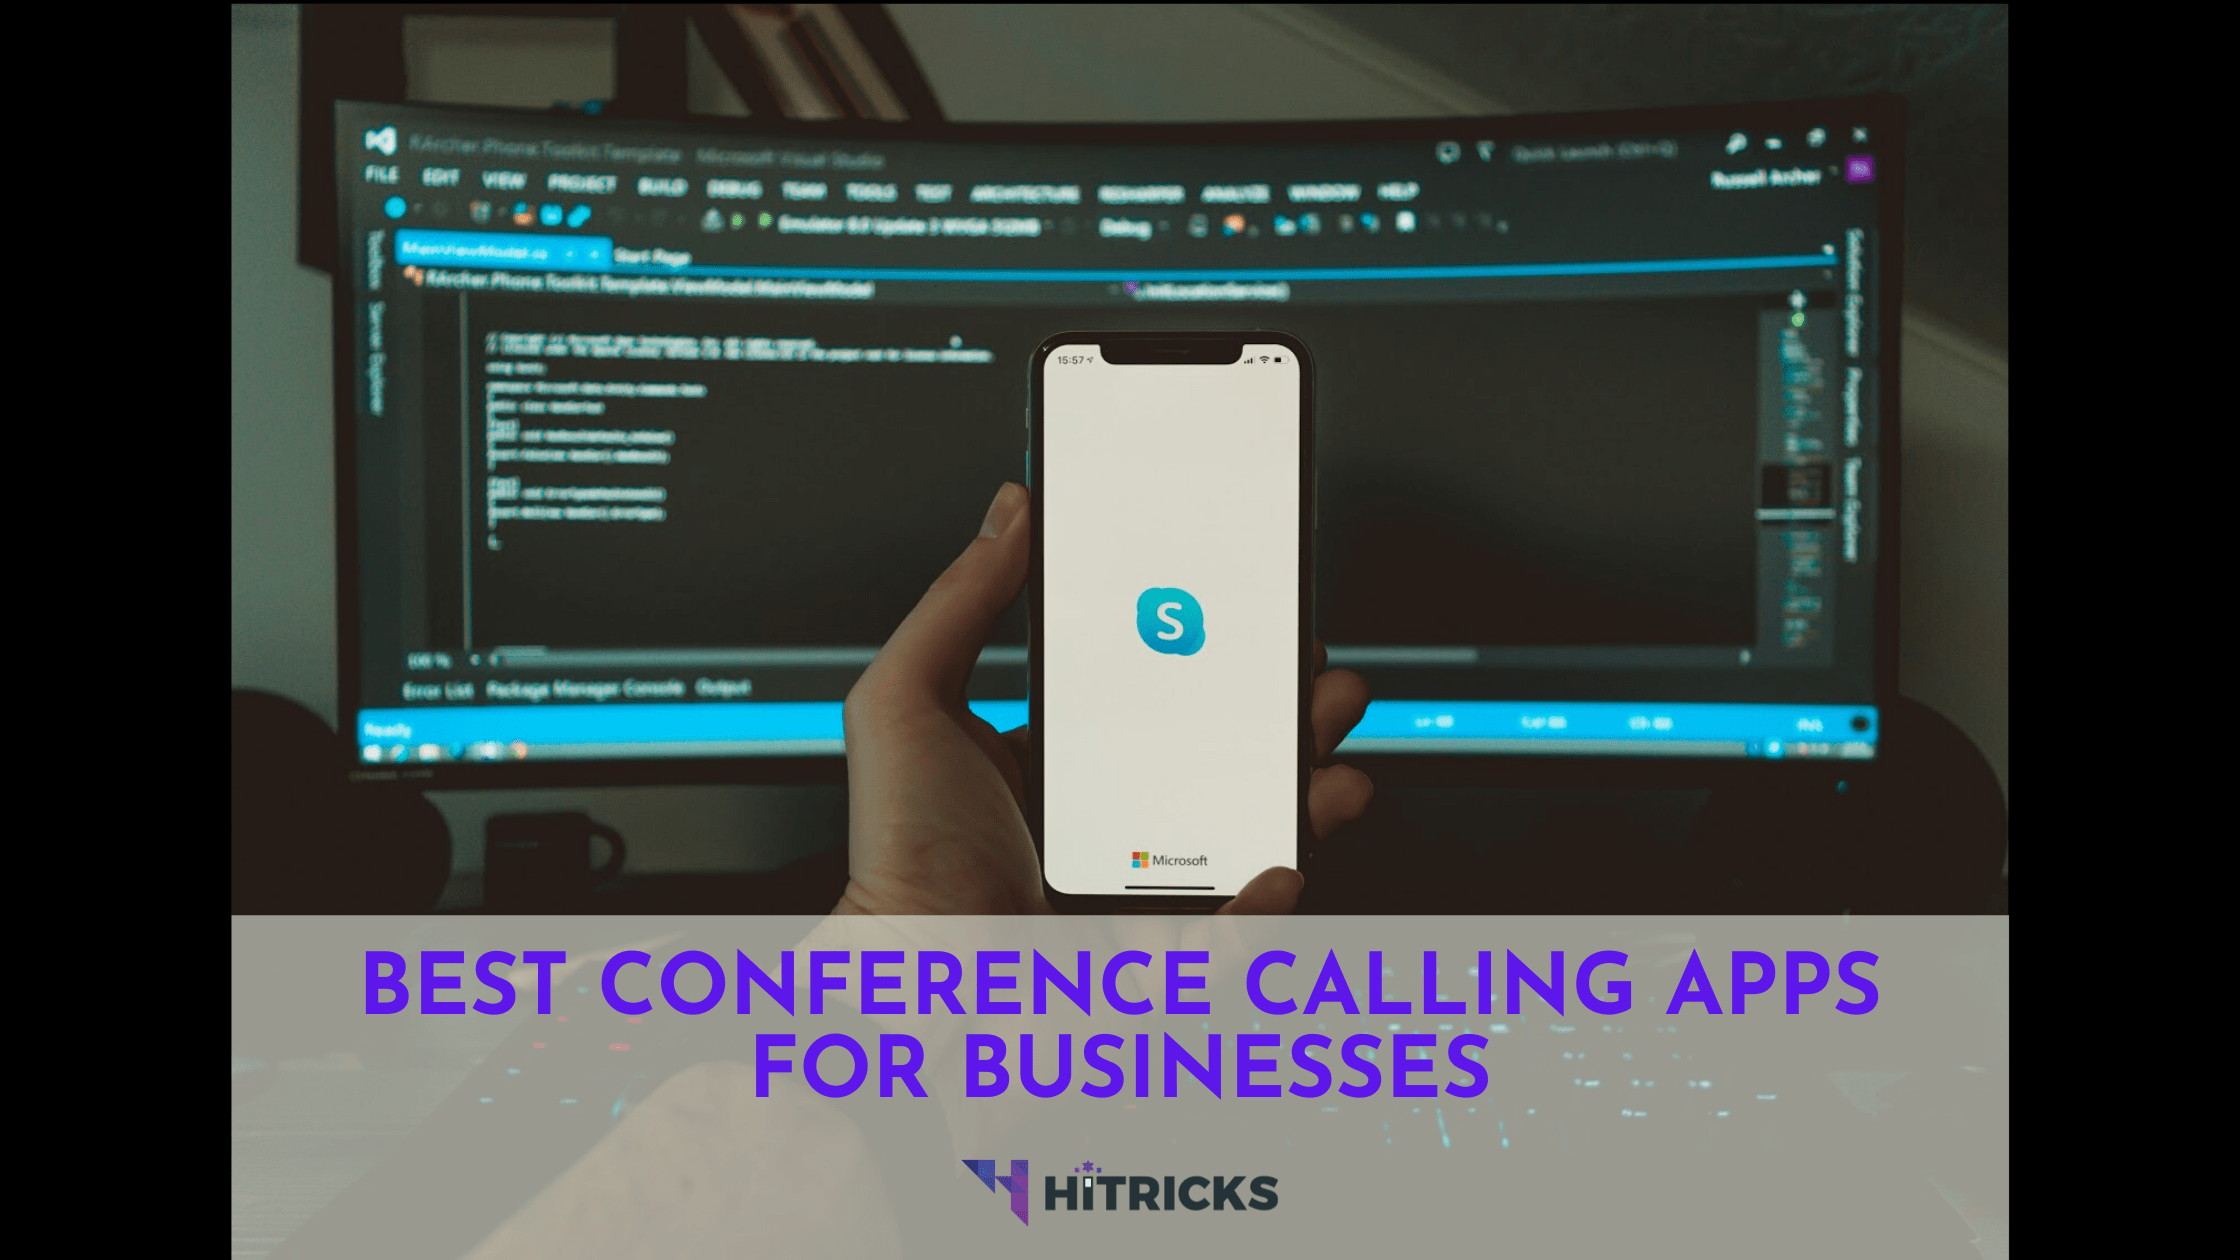 Best Conference Calling Apps for Businesses